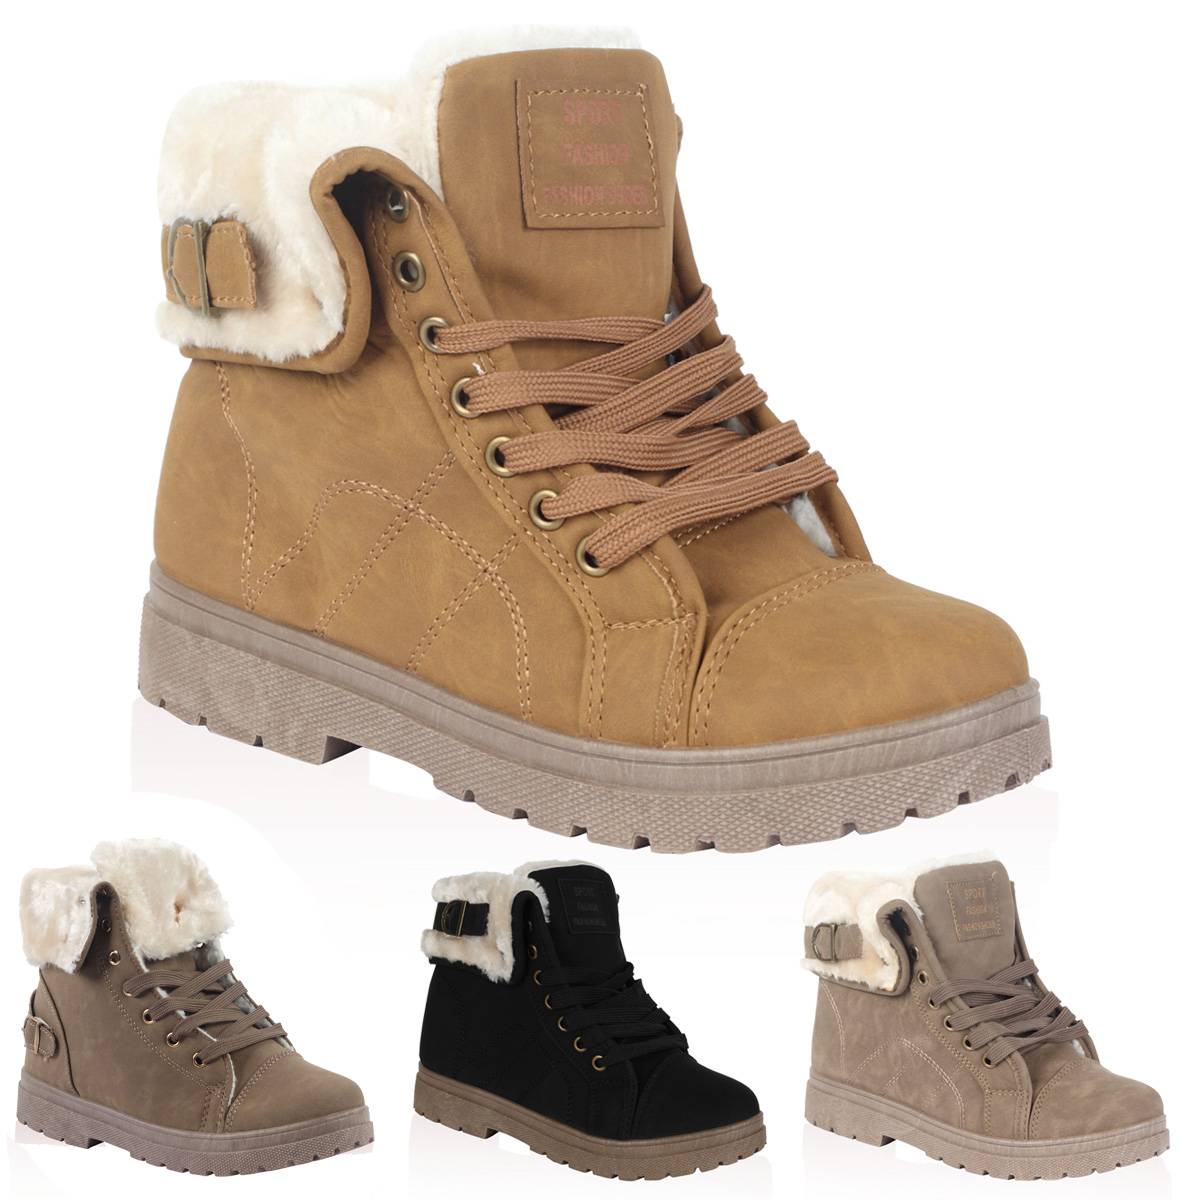 Women's winter snow boots size 11 – New Fashion Photo Blog